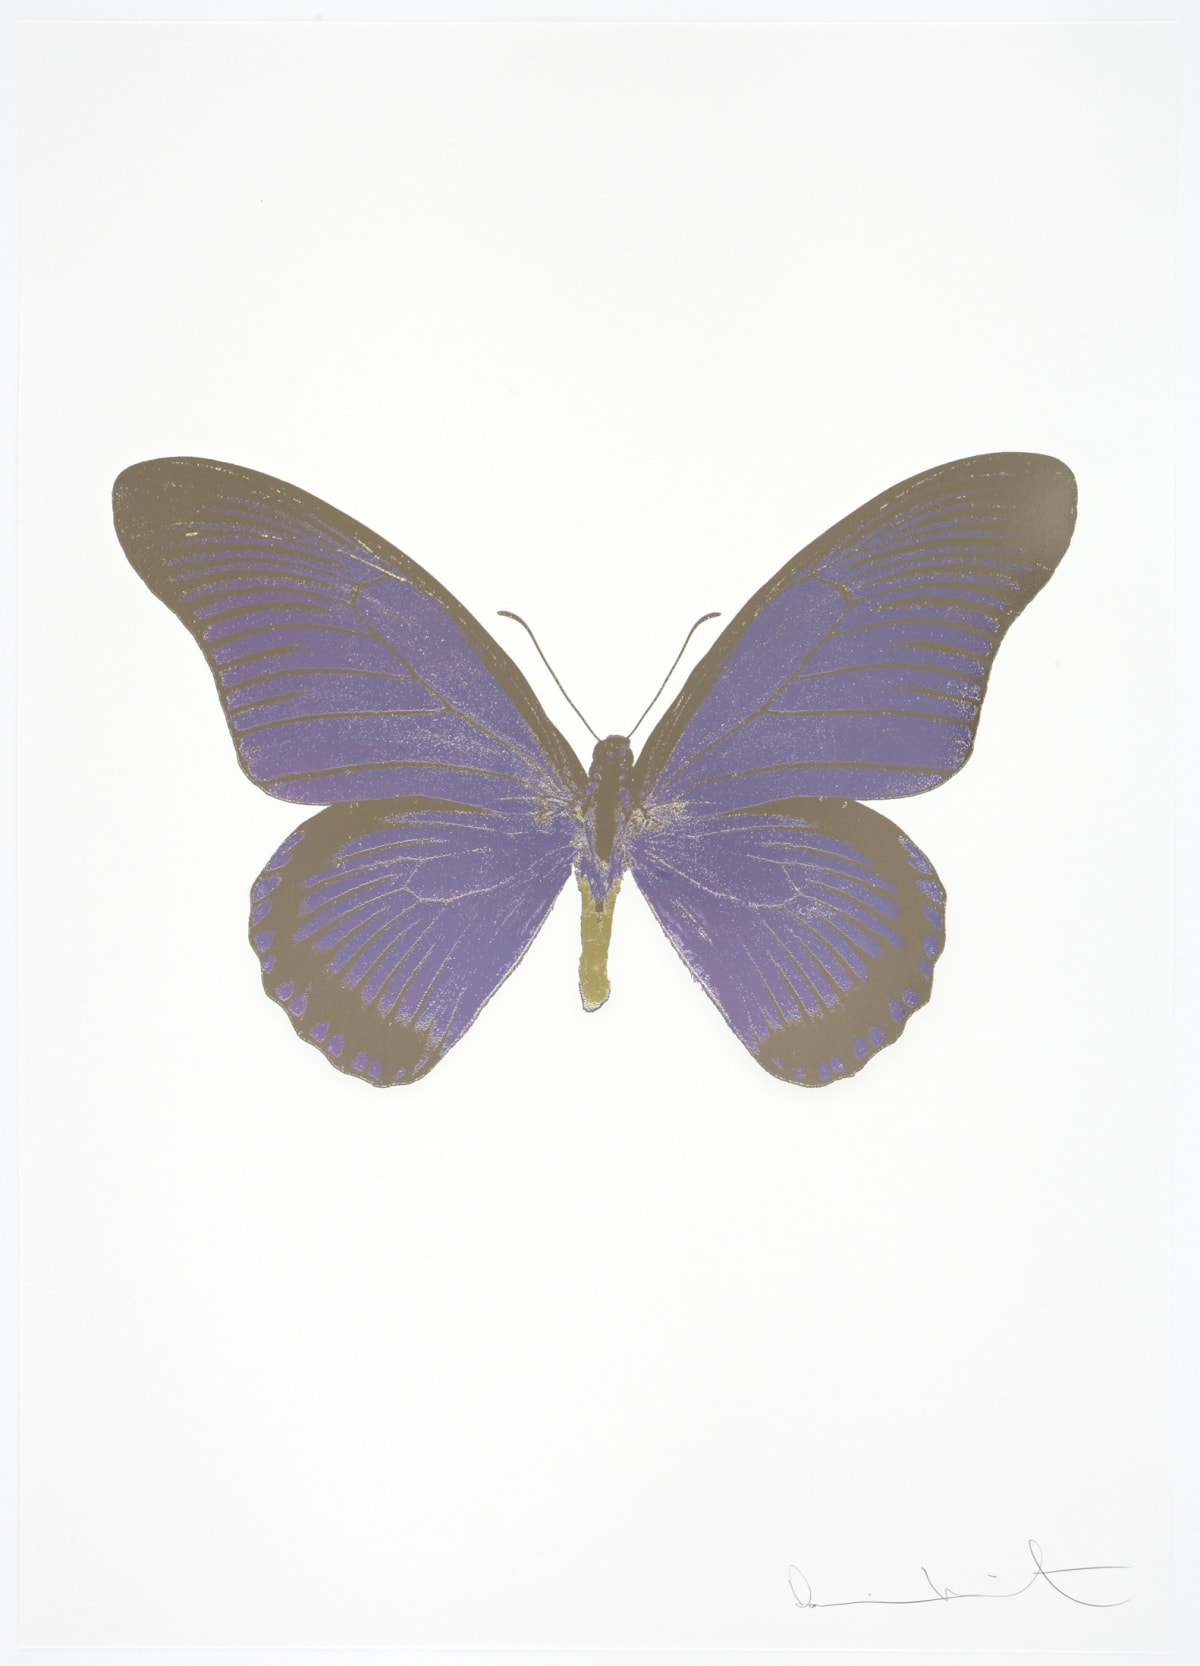 Damien Hirst The Souls IV - Aquarius/Gunmetal/Cool Gold Damien Hirst butterfly foil print for sale Damien Hirst print for sale , 2010 3 colour foil block on 300gsm Arches 88 archival paper. Signed and numbered. Published by Paul Stolper and Other Criteria 72 x 51cm OC8010 / 1418-33 Edition of 15